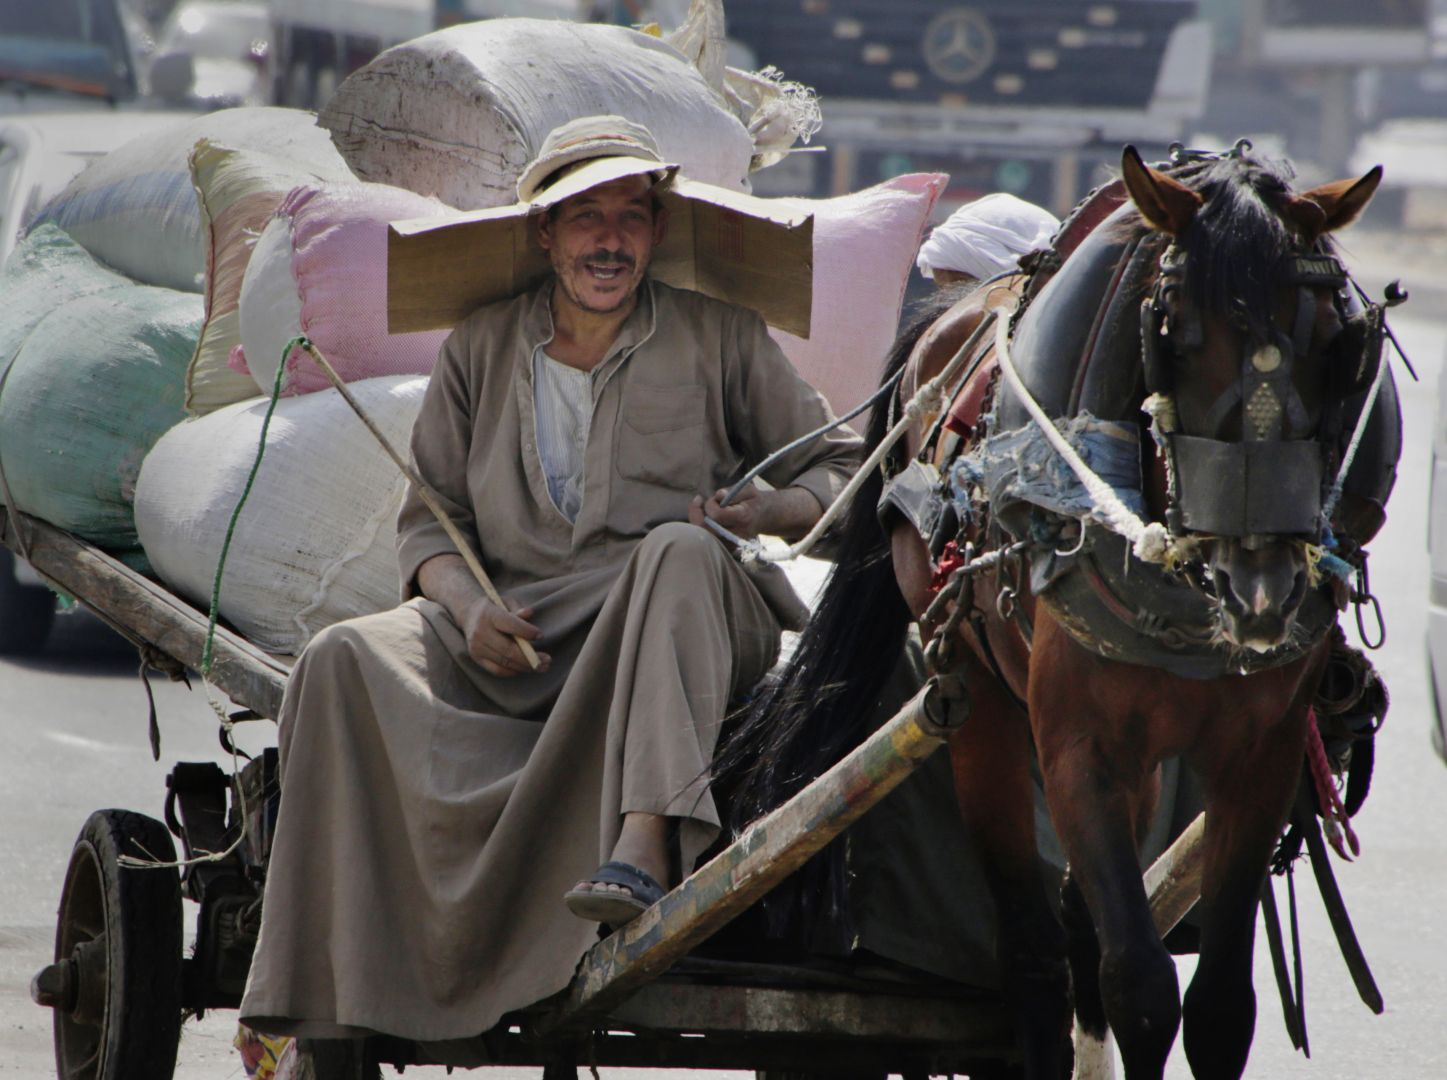 An Egyptian farmer rides his horse cart as he uses a makeshift hat with cardboard to protect his head from direct sunlight on a Cairo street in Egypt on Tuesday, Aug. 11, 2015. (AP Photo/Amr Nabil)